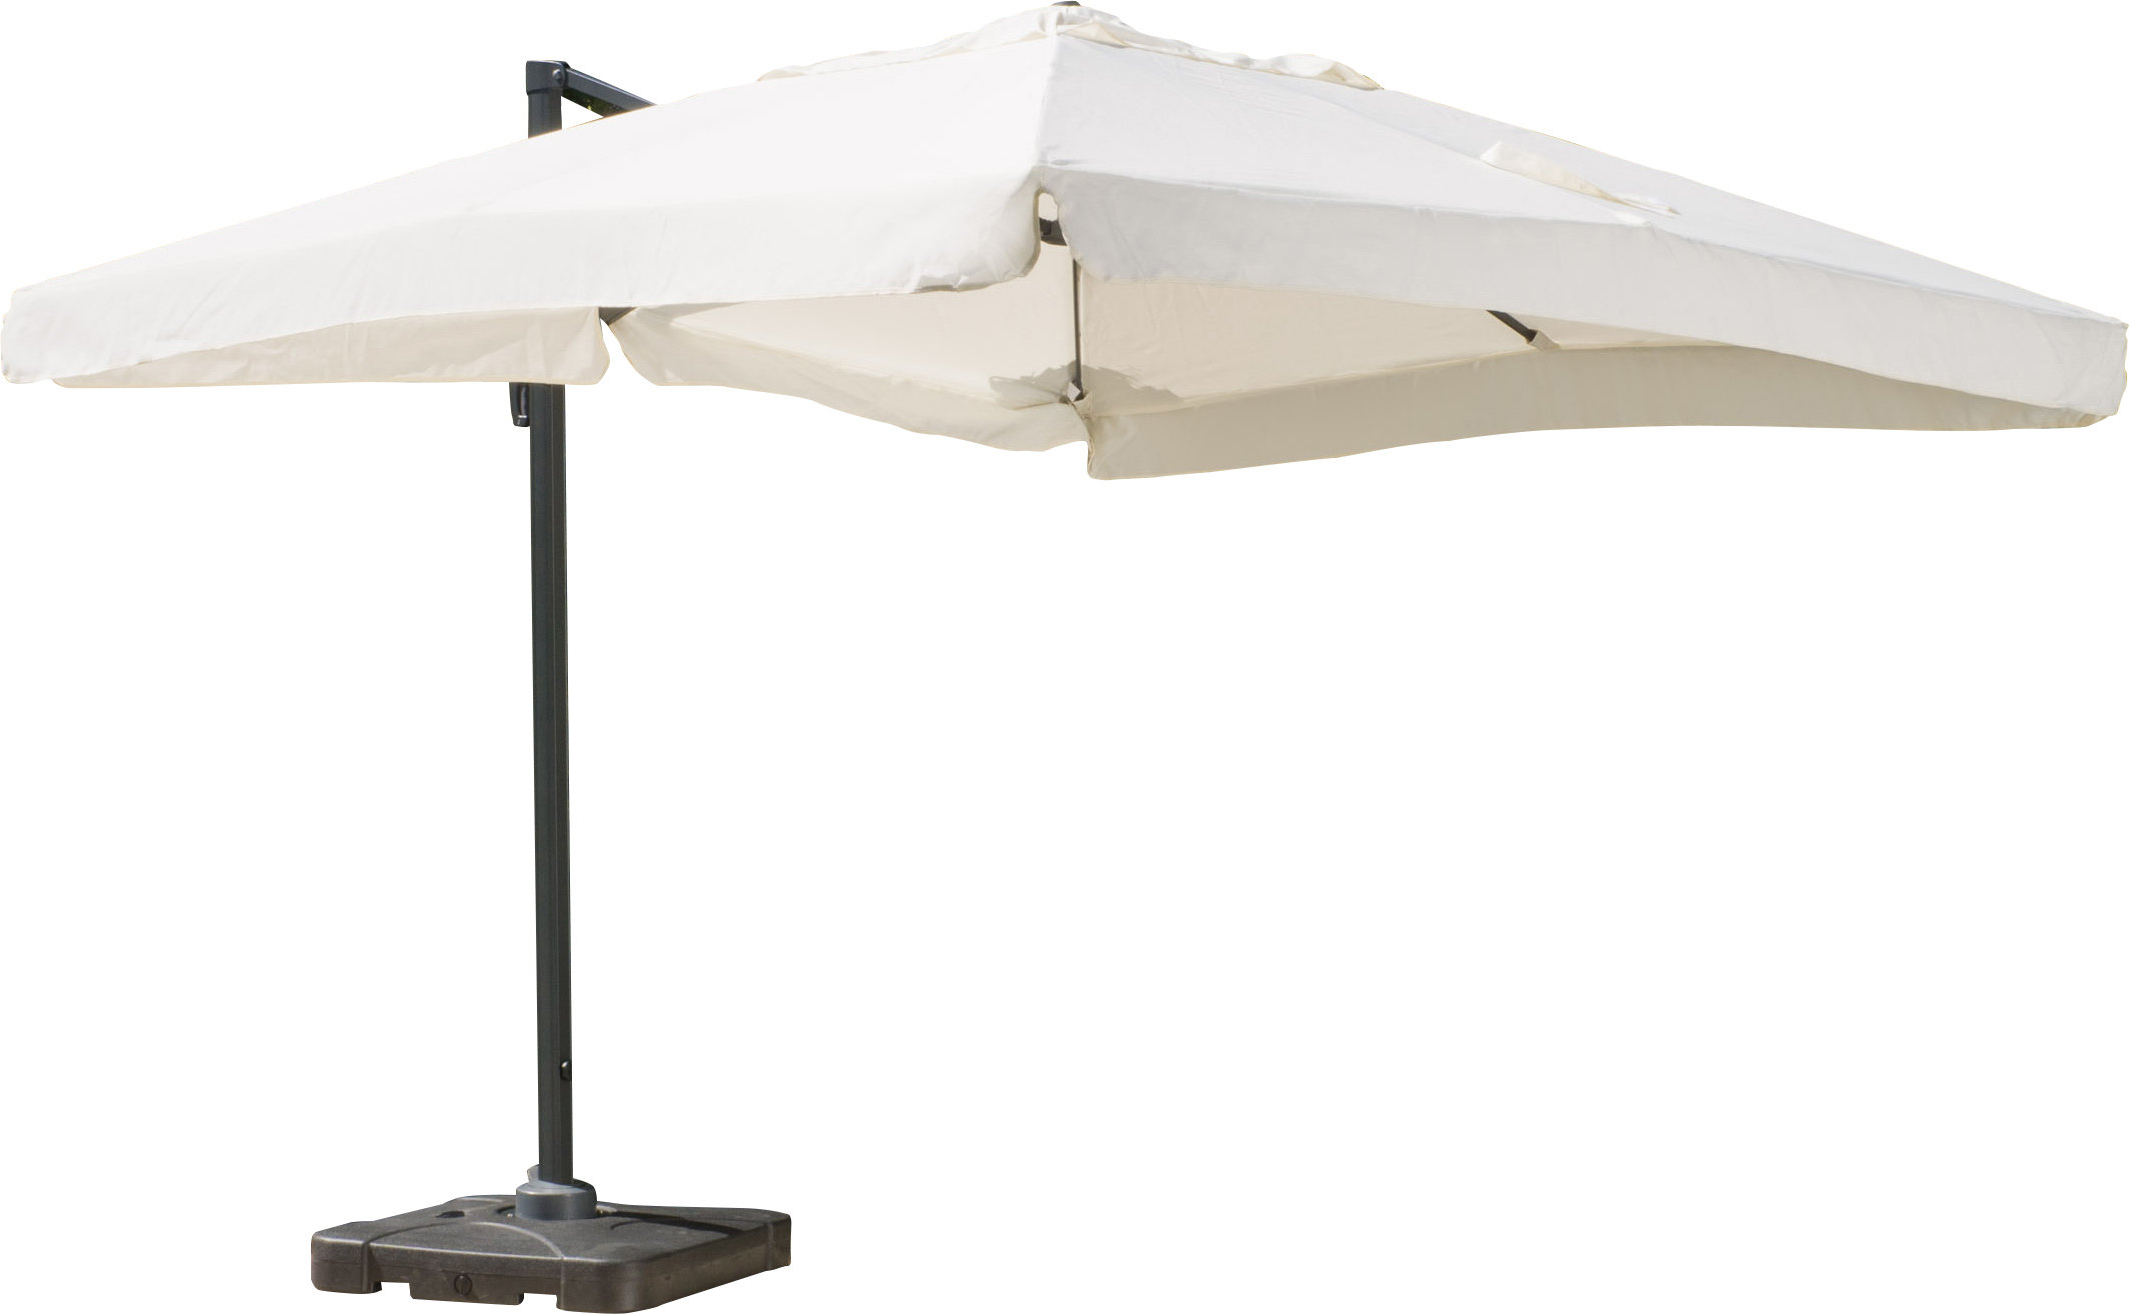 Most Popular Jendayi Square Cantilever Umbrellas Intended For Bondi 9.8' Square Cantilever Umbrella (Gallery 4 of 20)